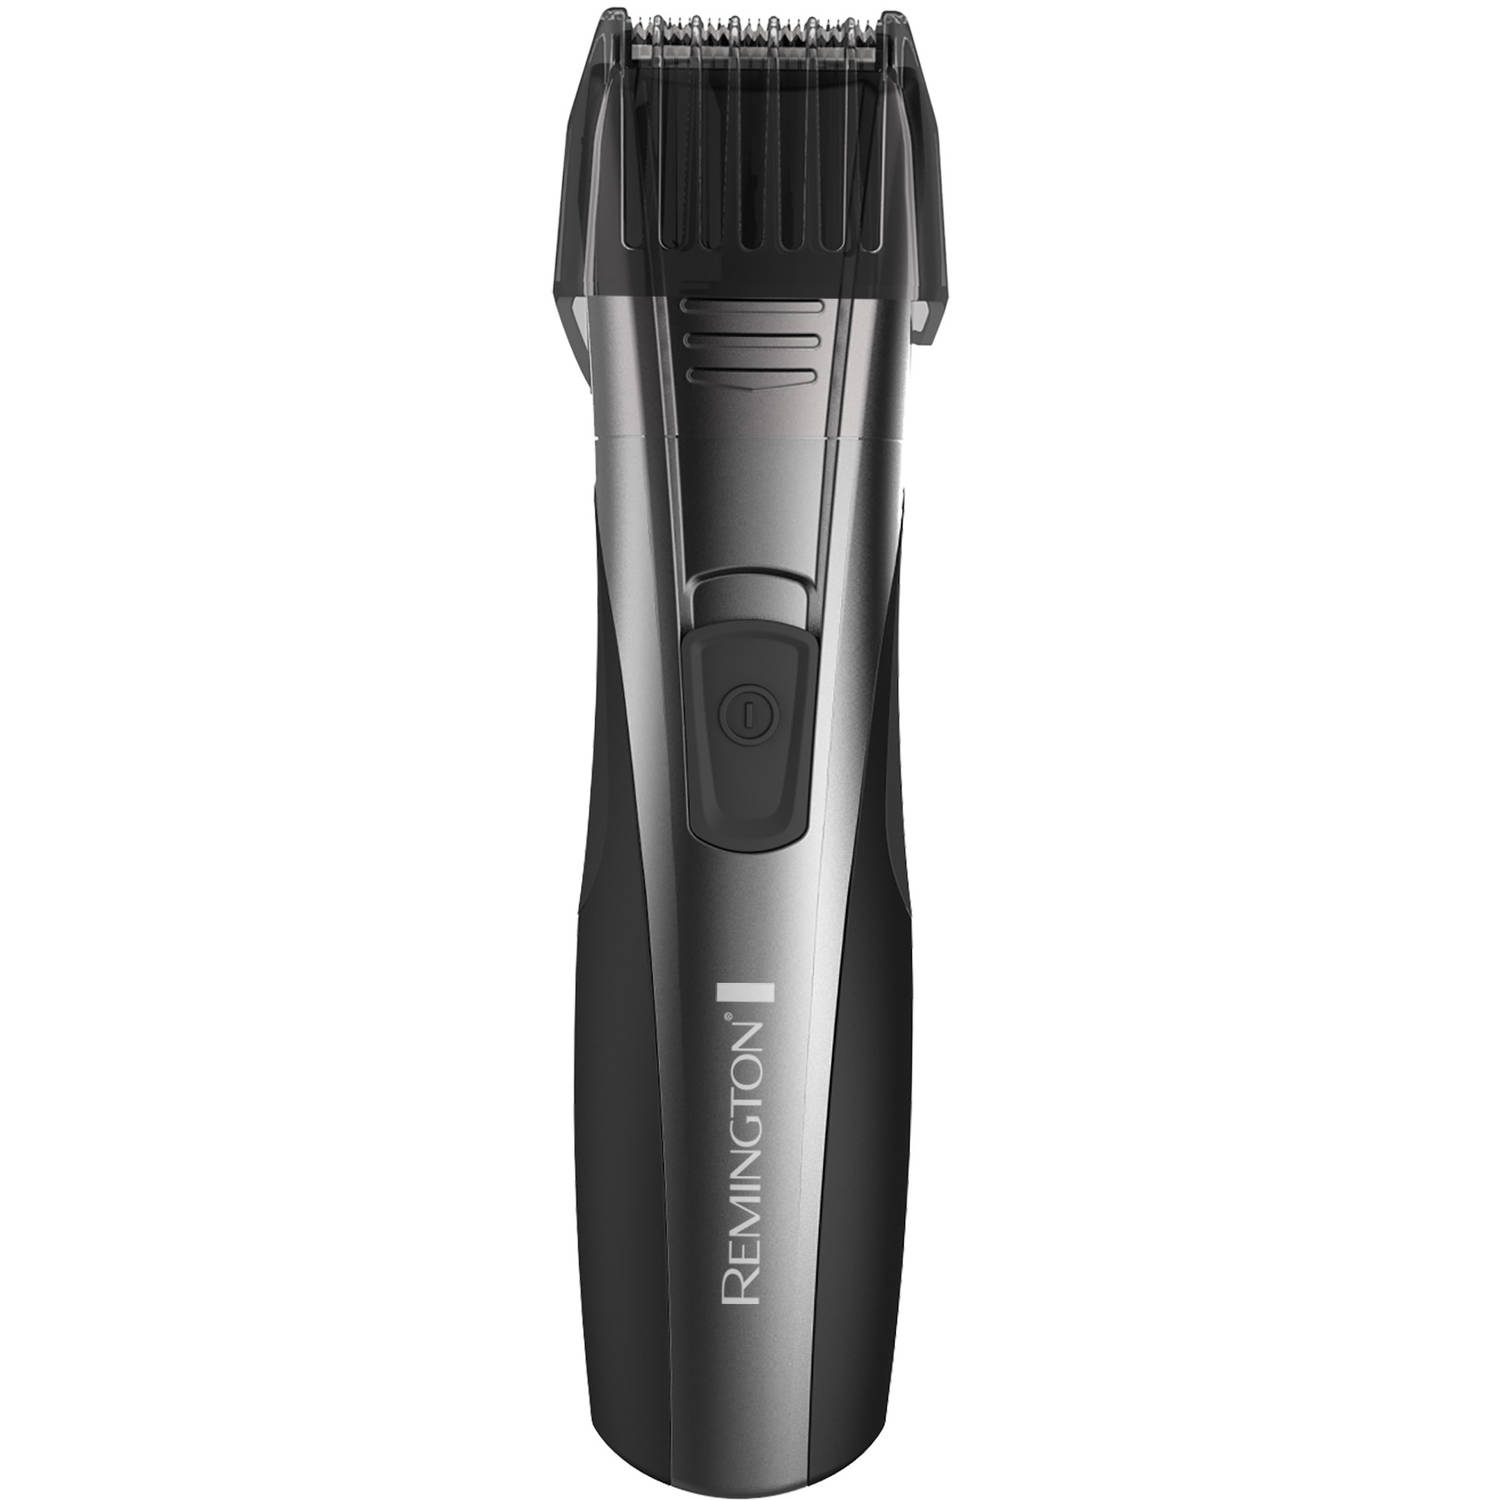 Remington Lithium Powered Beard & Mustache Trimmer, Men's Electric Razor, Electric Shaver, Beard Trimmer – MB2500